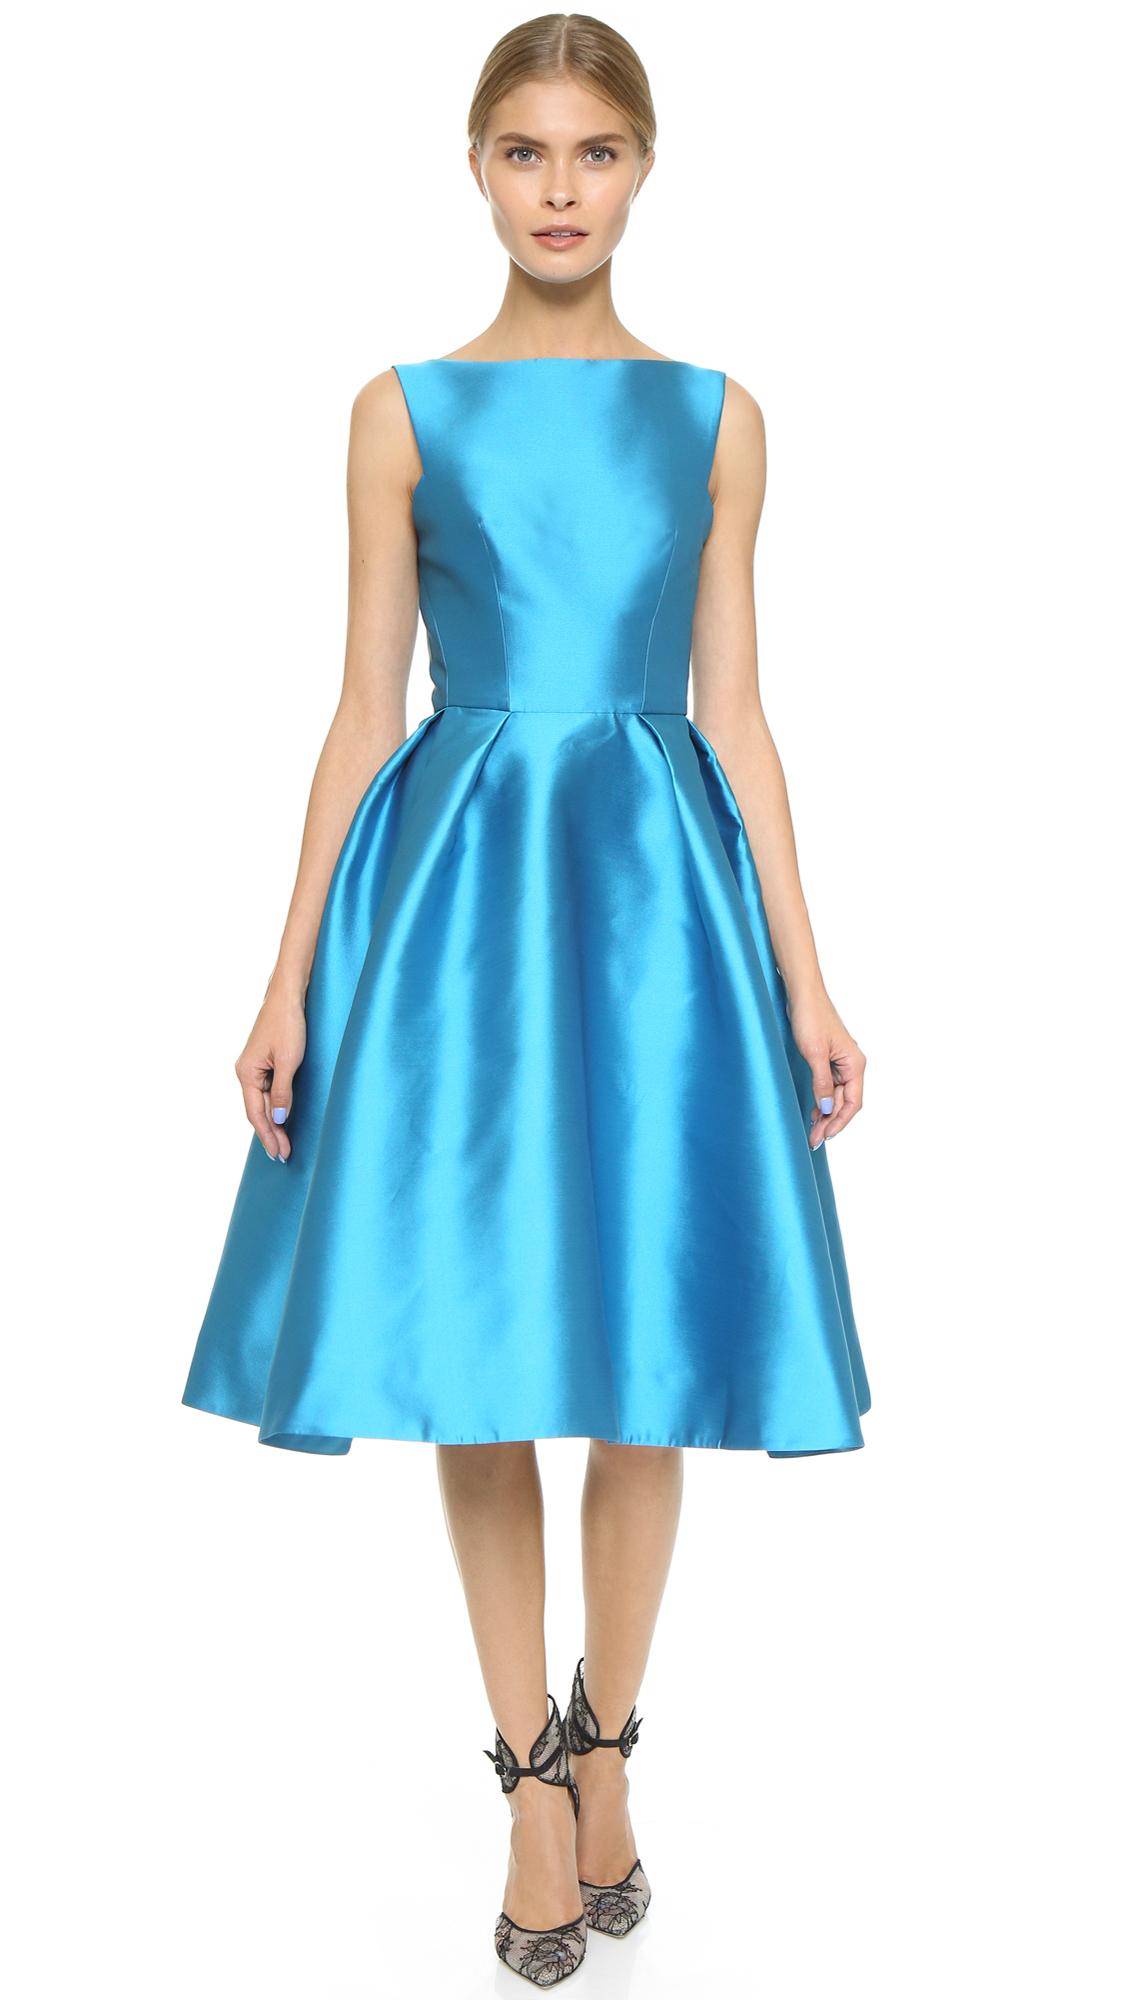 Lyst - Monique Lhuillier Structured Sleeveless Dress in Blue